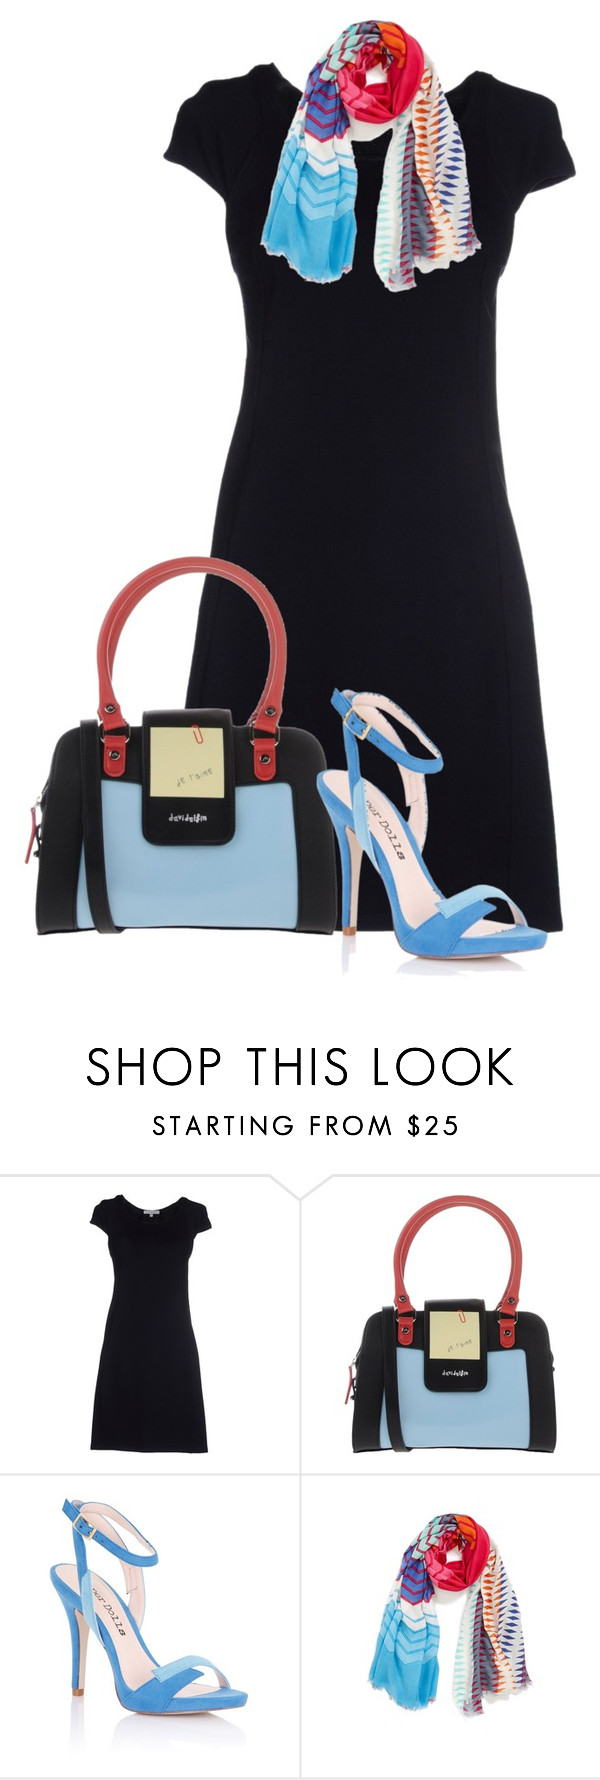 """""""baby blue accessories minimalist"""" by rvazquez ❤ liked on Polyvore featuring Patrizia Pepe, Davidelfin, Lipsy and Urban Originals"""